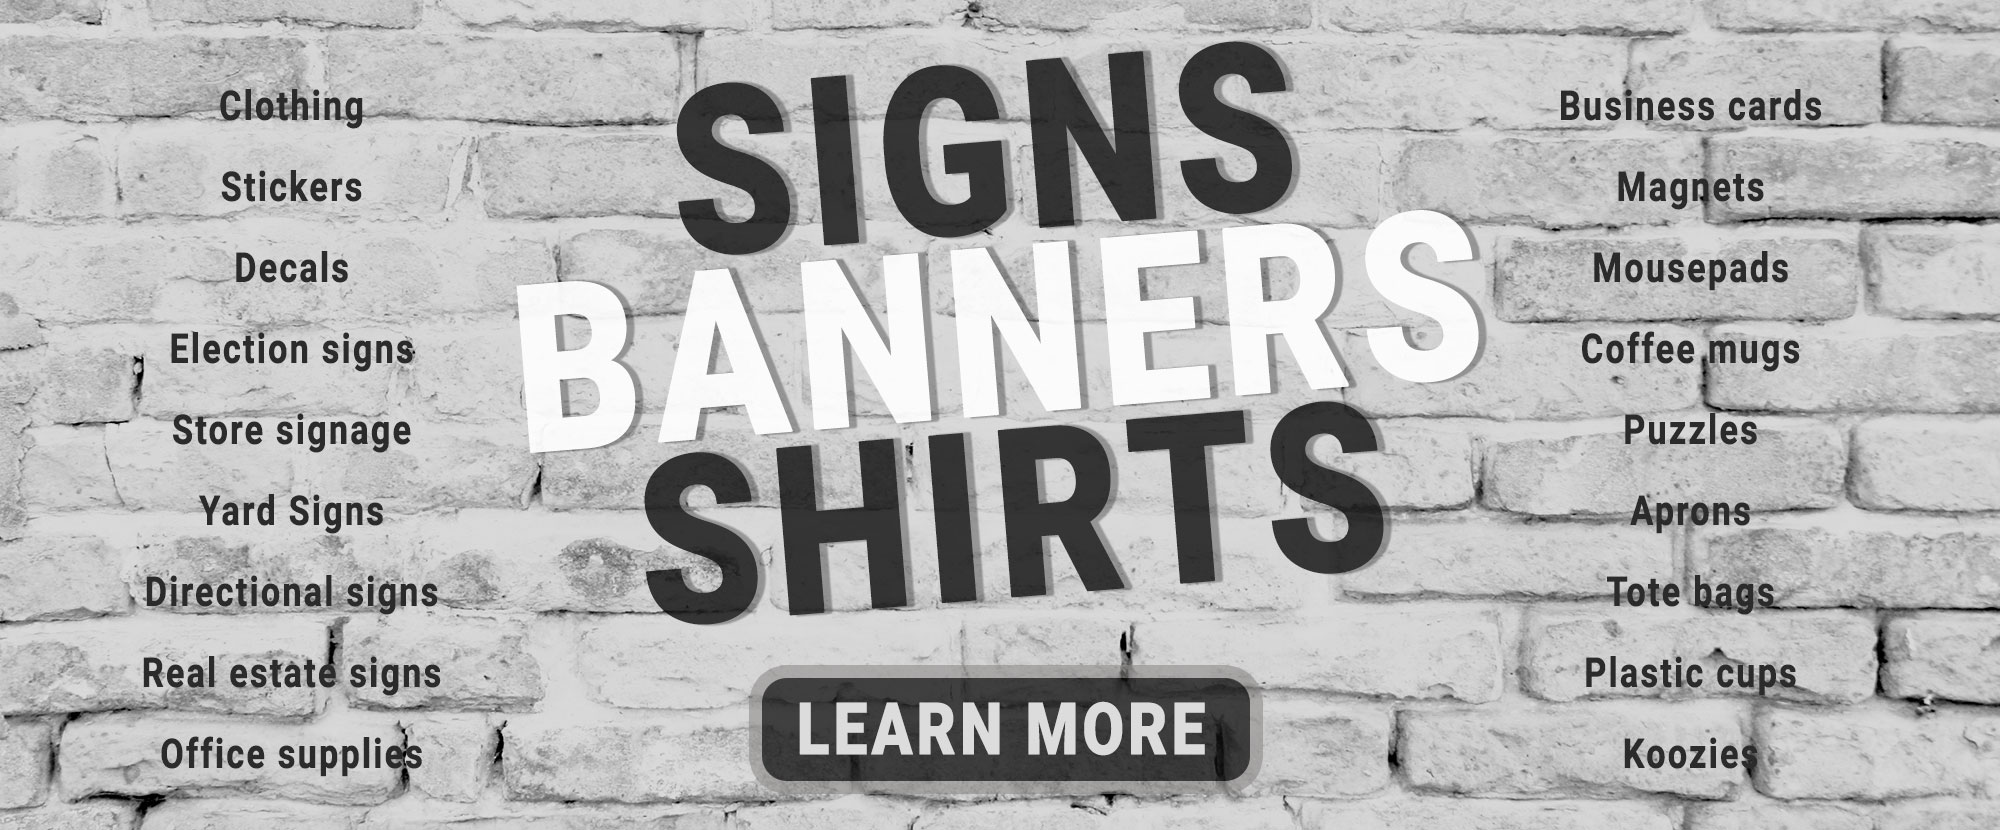 9cecc5a628c signs banners and shirts graphic